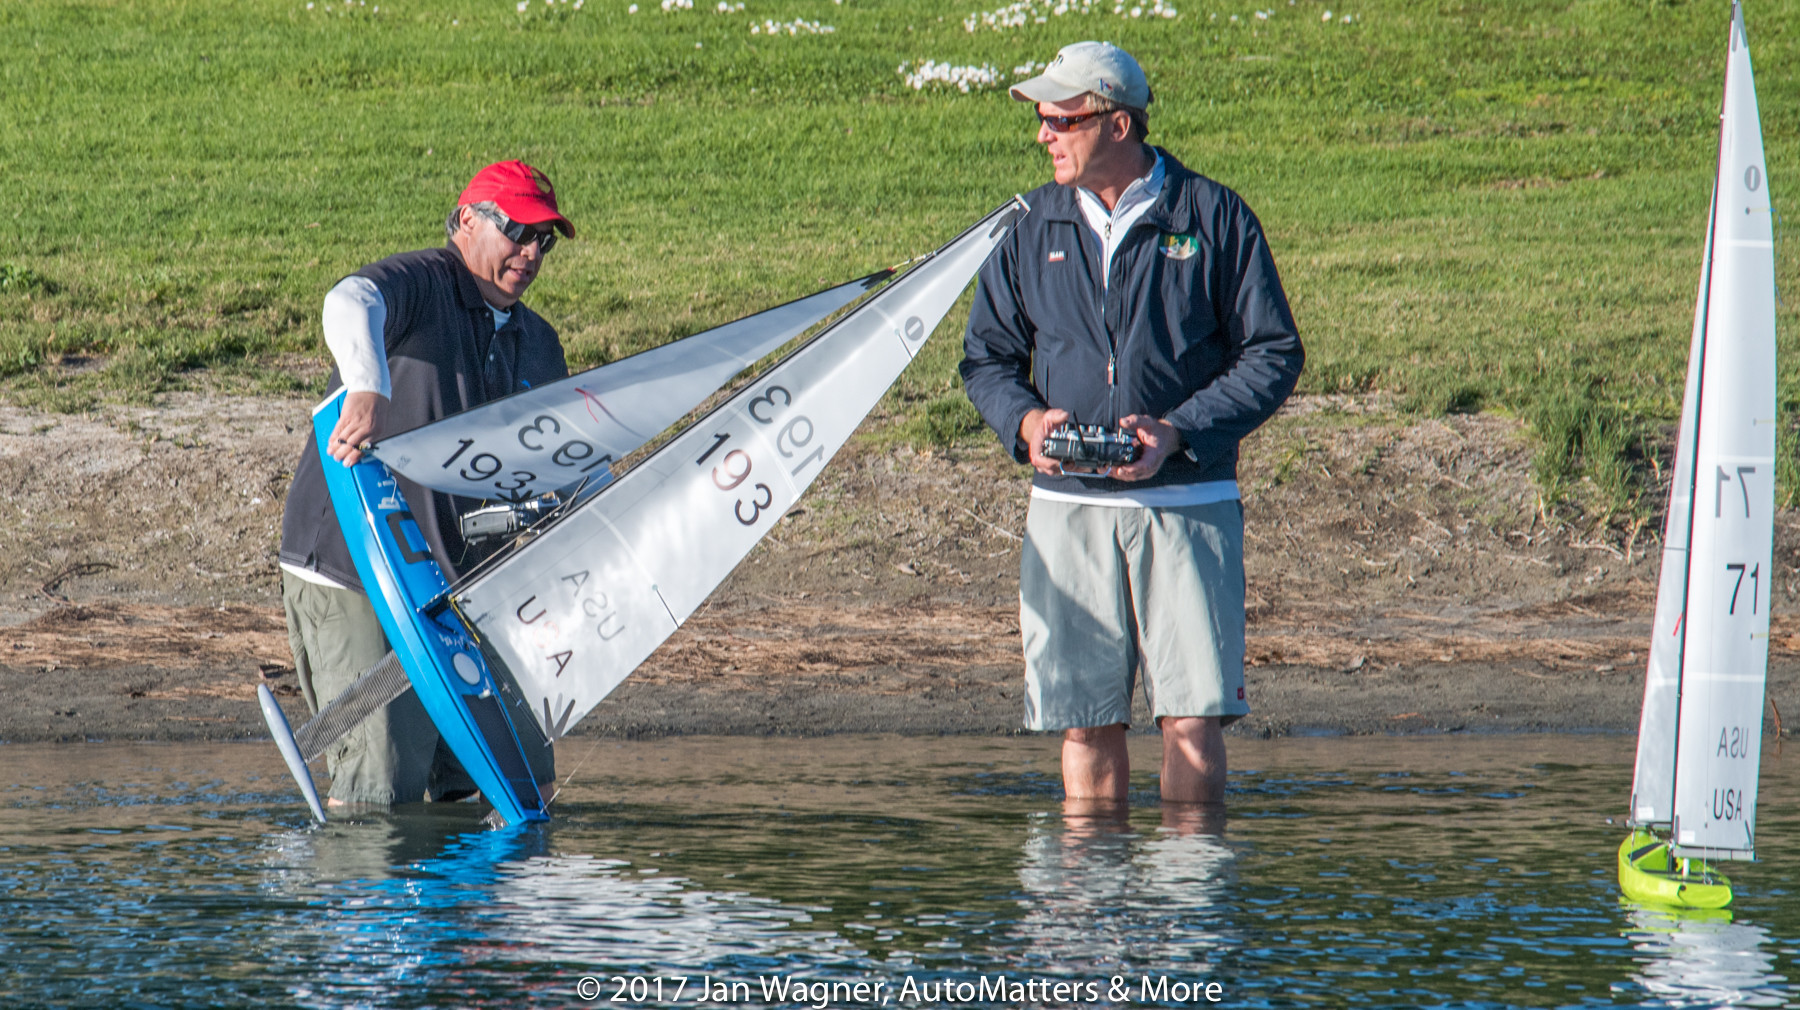 AutoMatters & More: IOM R/C Sailboat Racing